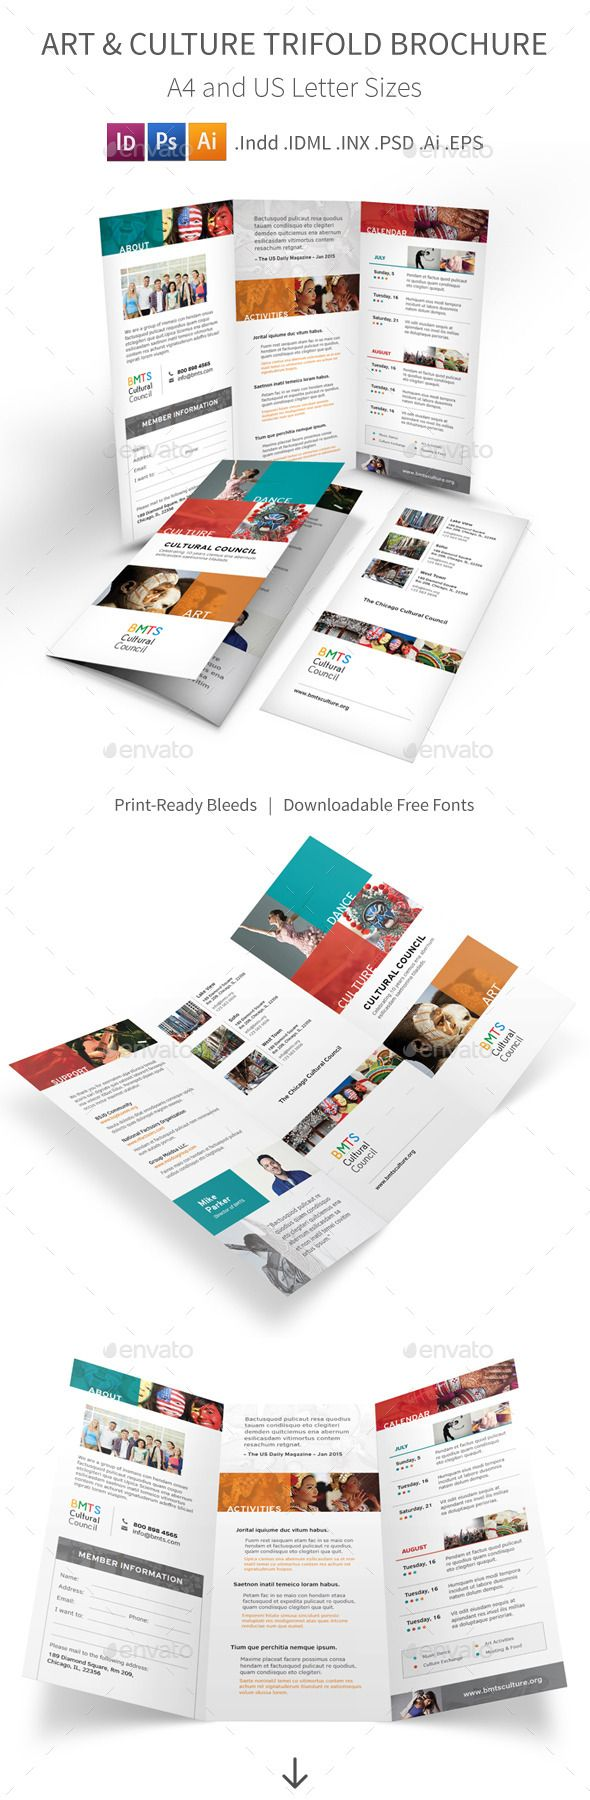 Art And Culture Trifold Brochure Template Printdesign Brochure